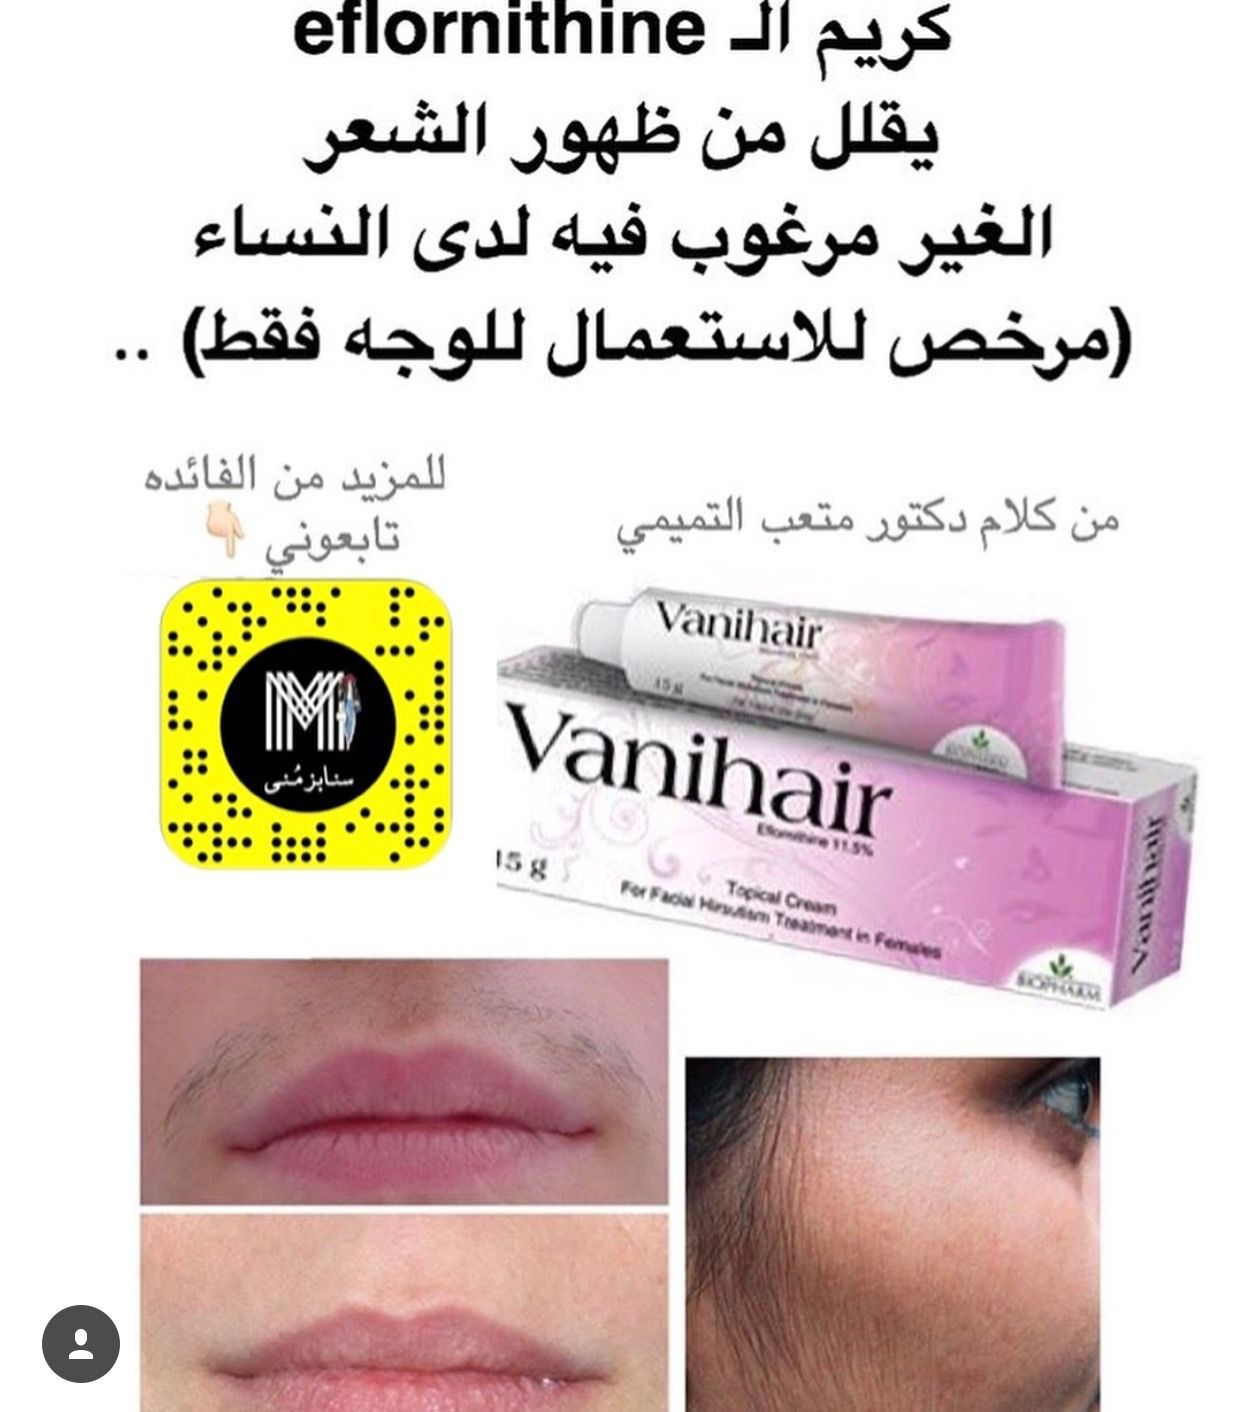 Pin by Sara Odeh on كريمات و مرطبات in 2020 Beauty skin